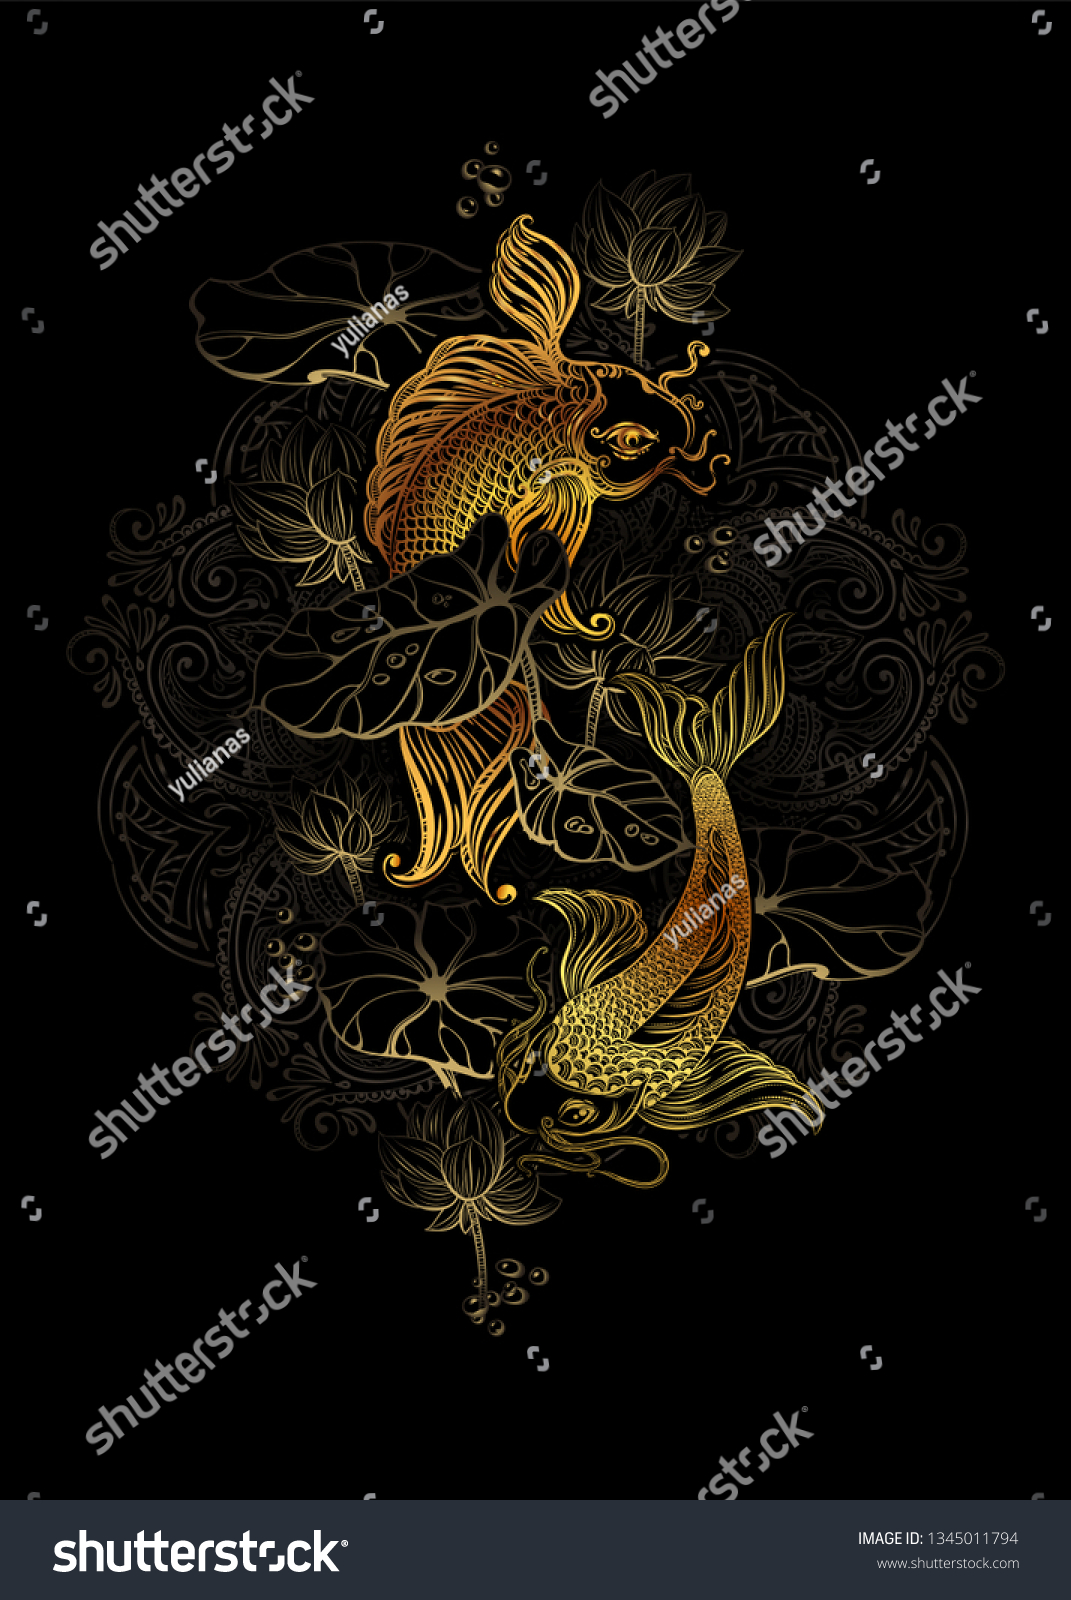 Koi carps and lotus asian spiritual symbols goldfish rises in upwards it can be used for tattoo embroidery and fancywork or print for interior